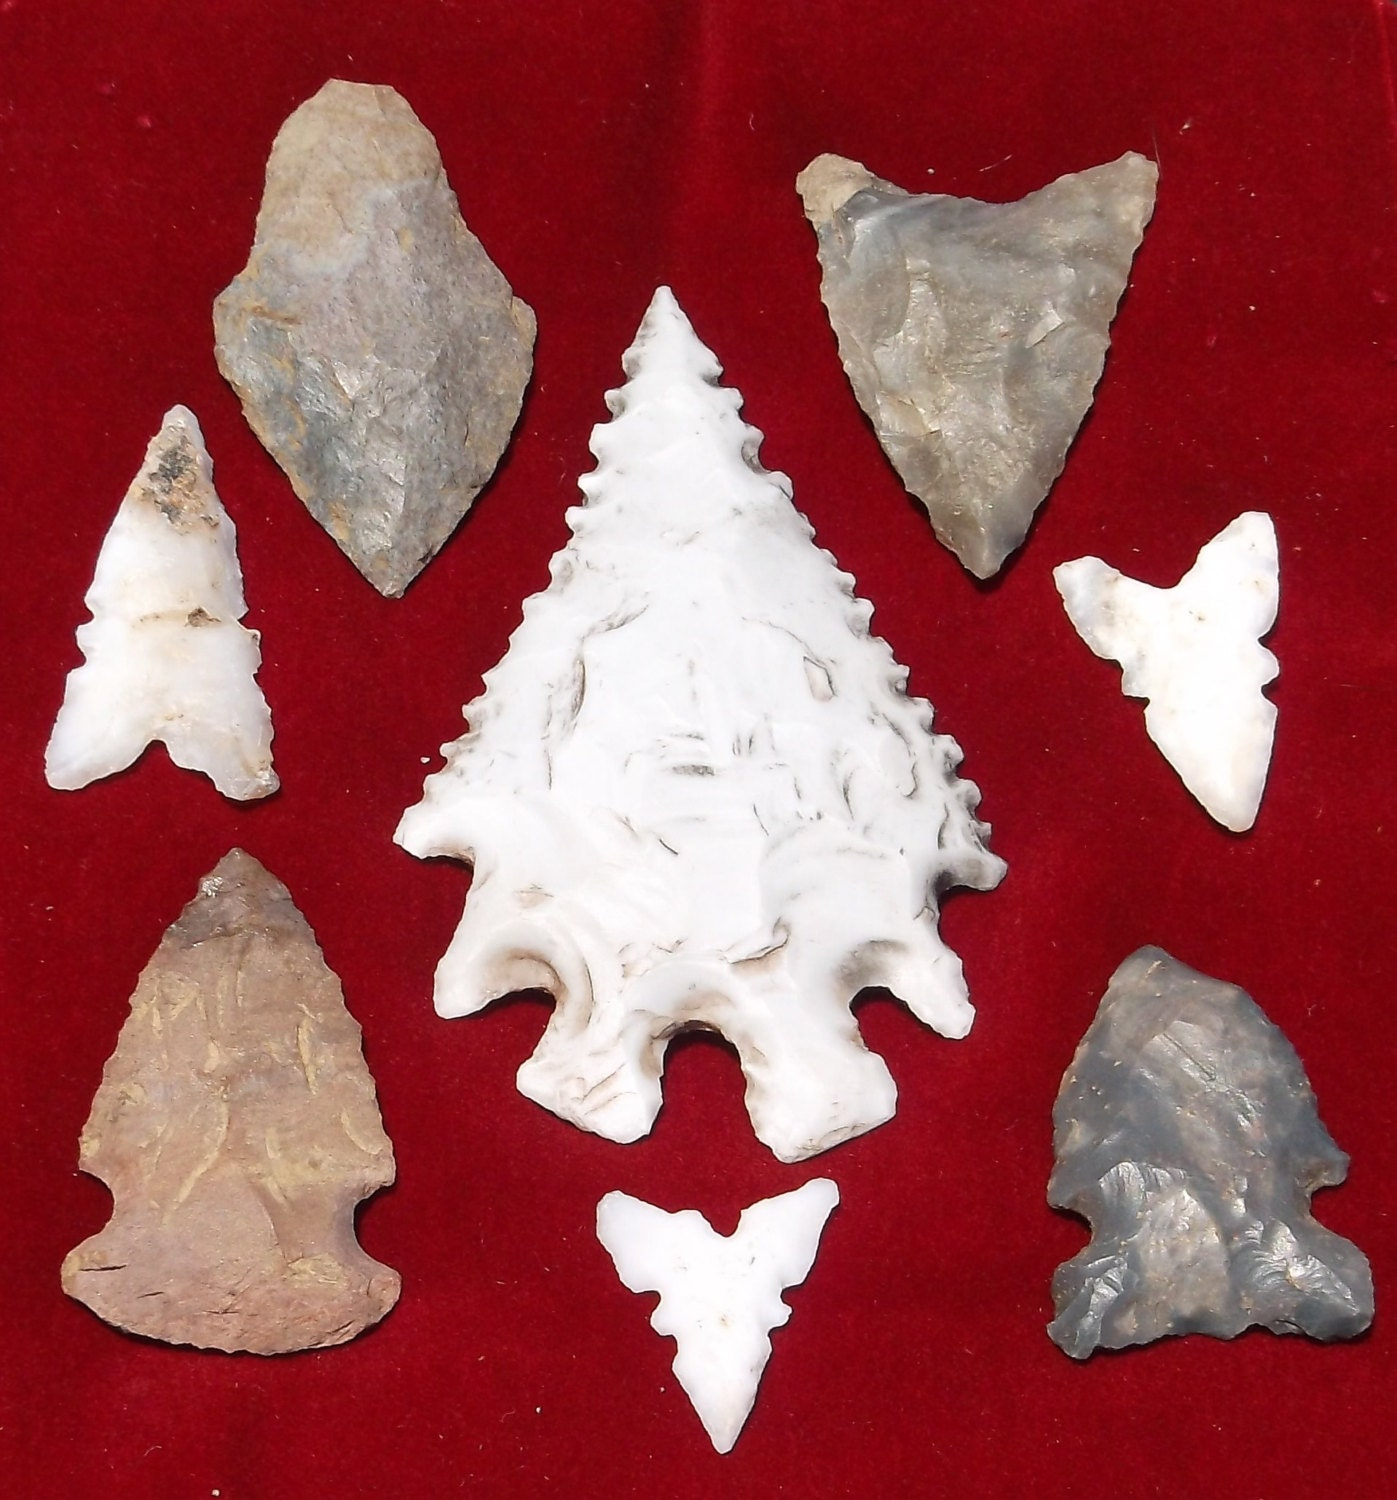 Stone Arrowhead Collection With Eccentric Pine Tree